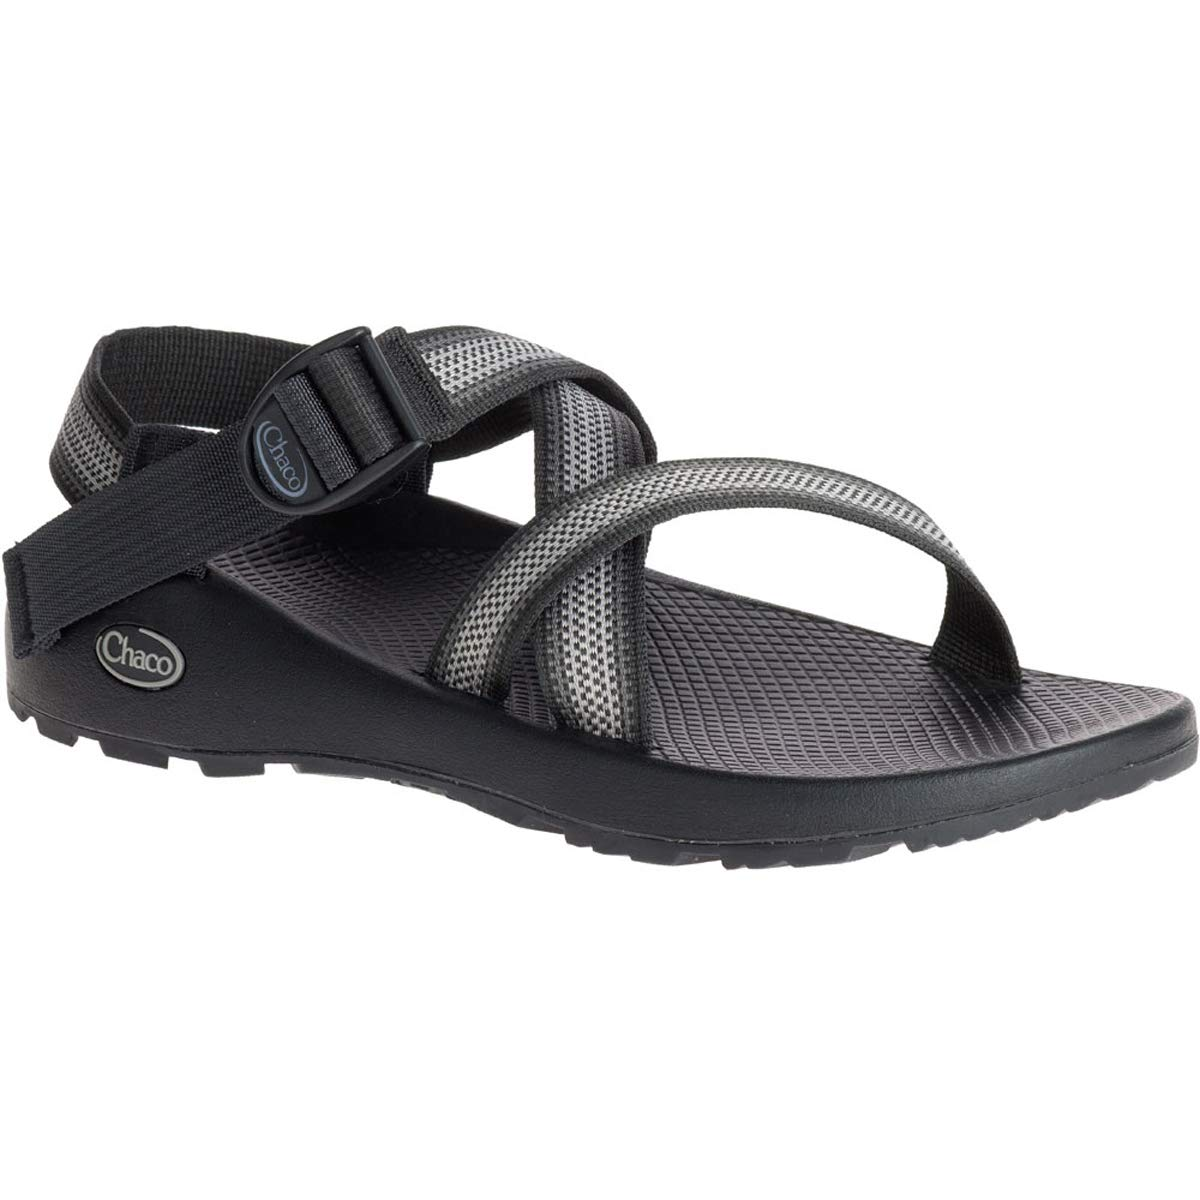 Chaco Men's Z1 Classic Athletic Sandal, Split Gray, 10 M US by Chaco